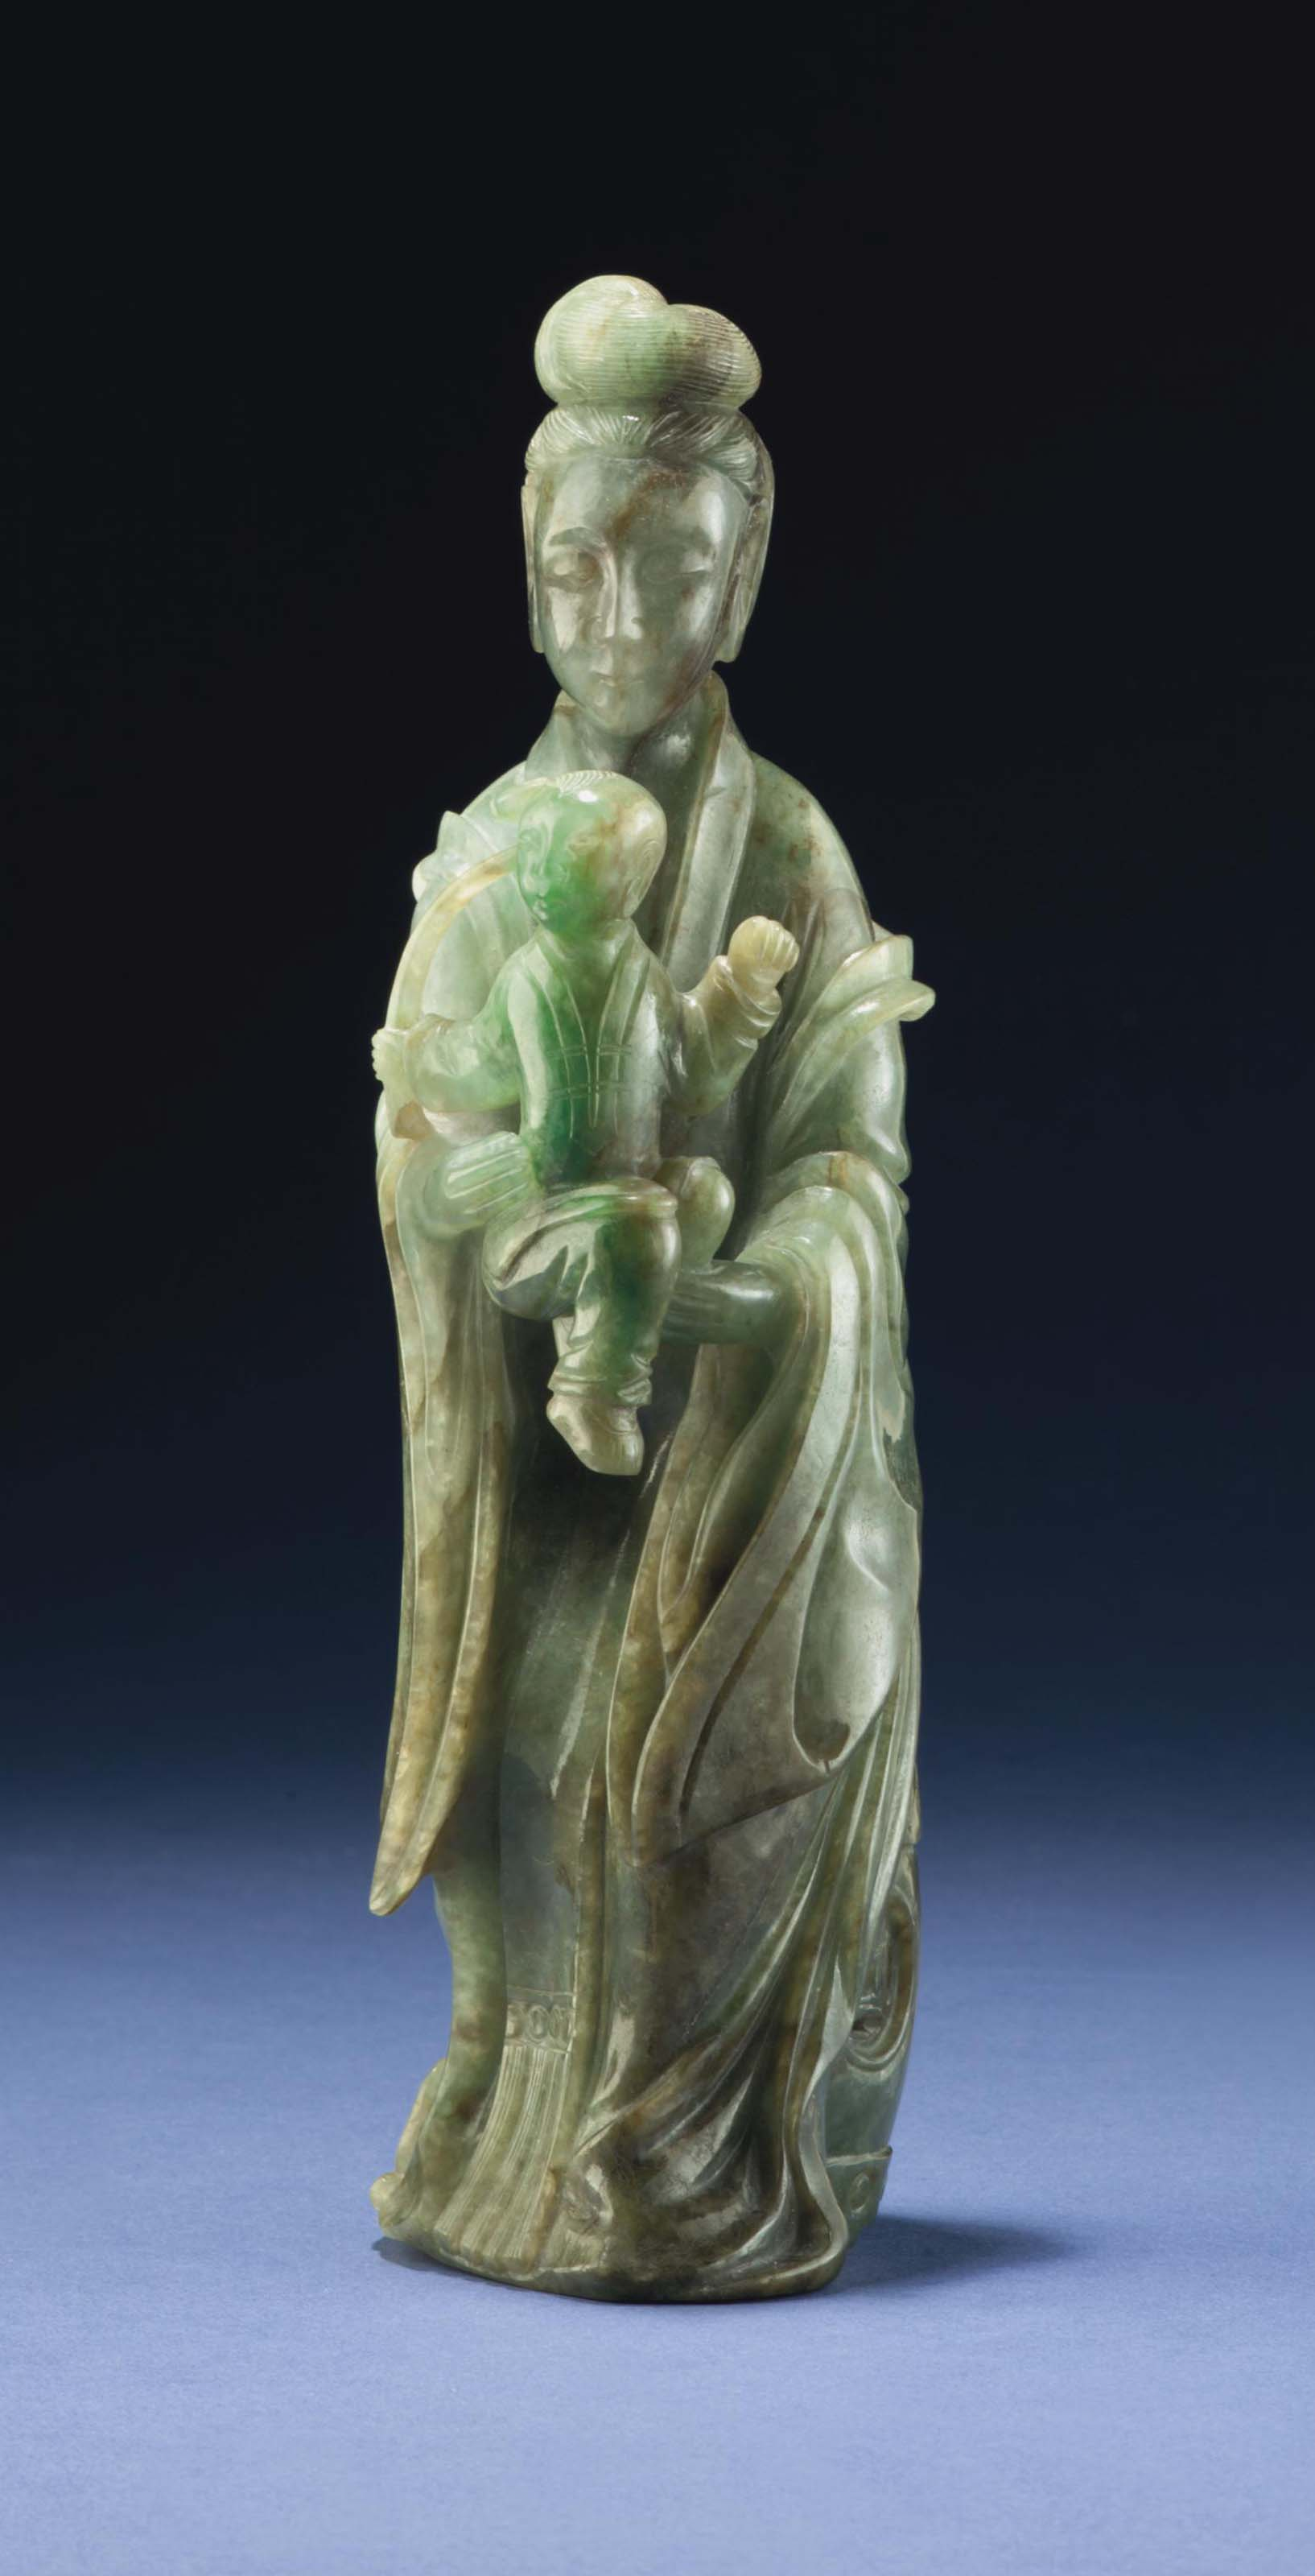 A MOTTLED JADEITE FIGURE OF A